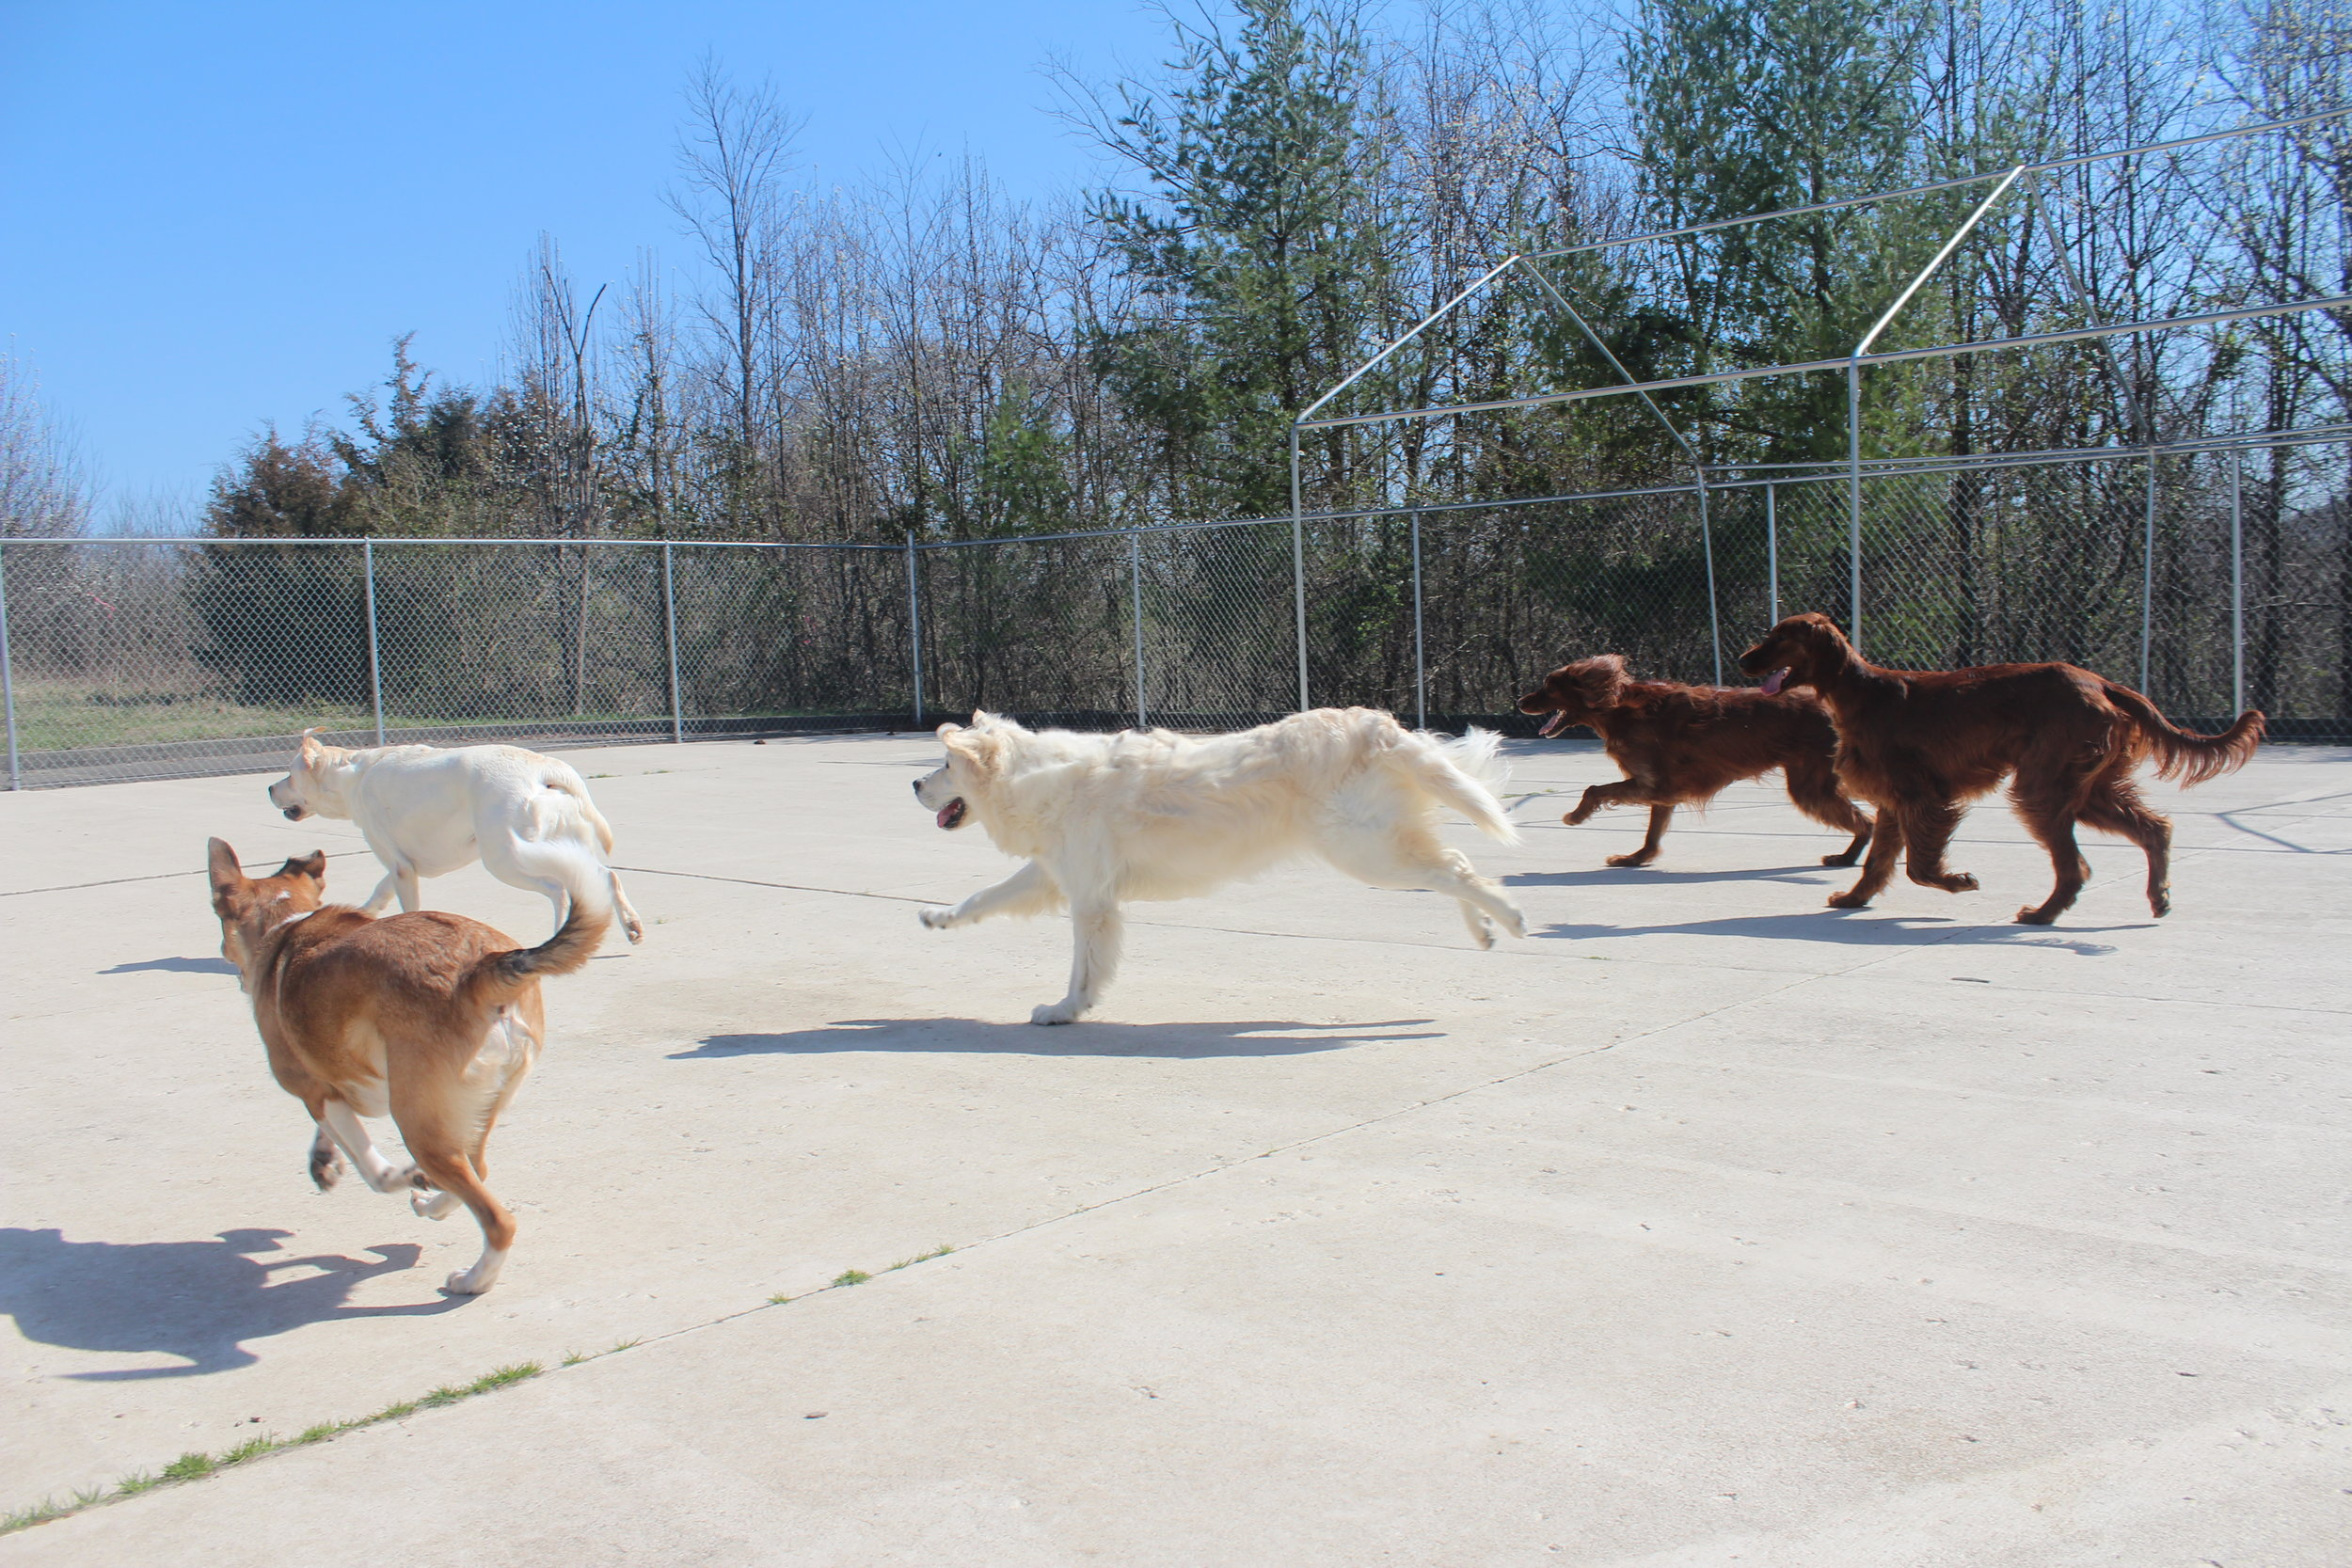 With so much space here at Pet Nation Lodge there's a lot of playtime to be had with new and old friends. All you need is a tennis ball and a decent arm and you've got some happy dogs.